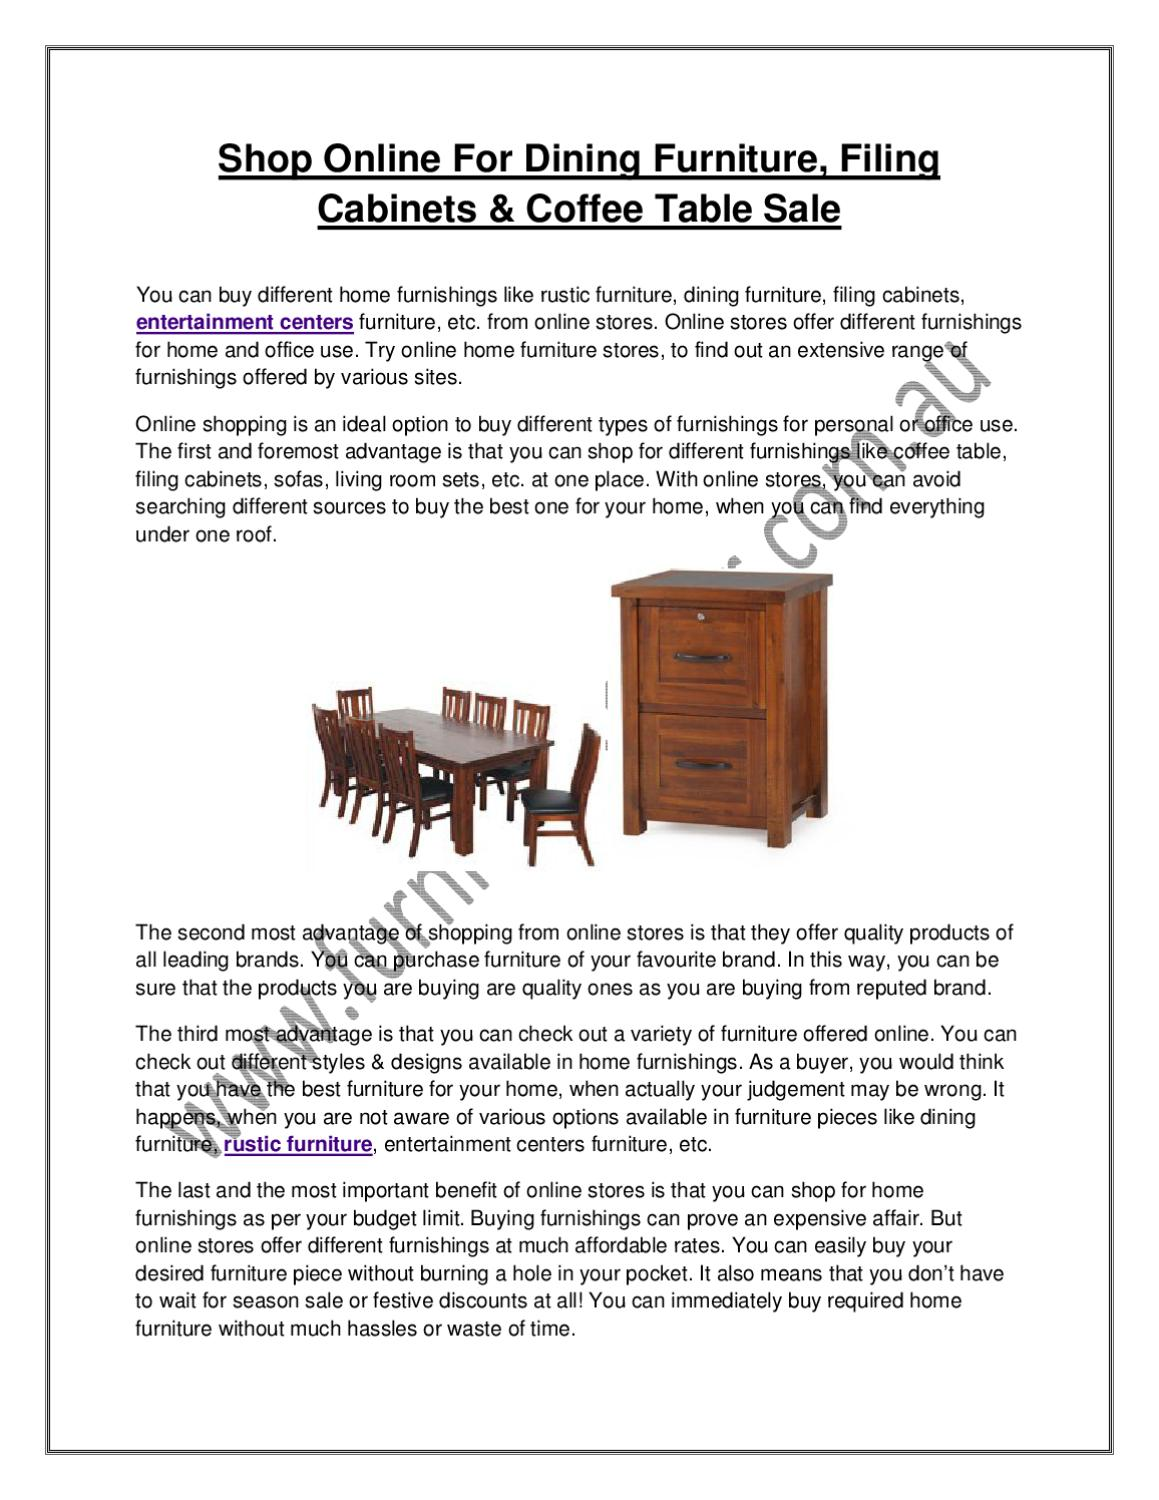 Shop online for dining furniture filing cabinets coffee table sale by the furniture trader issuu